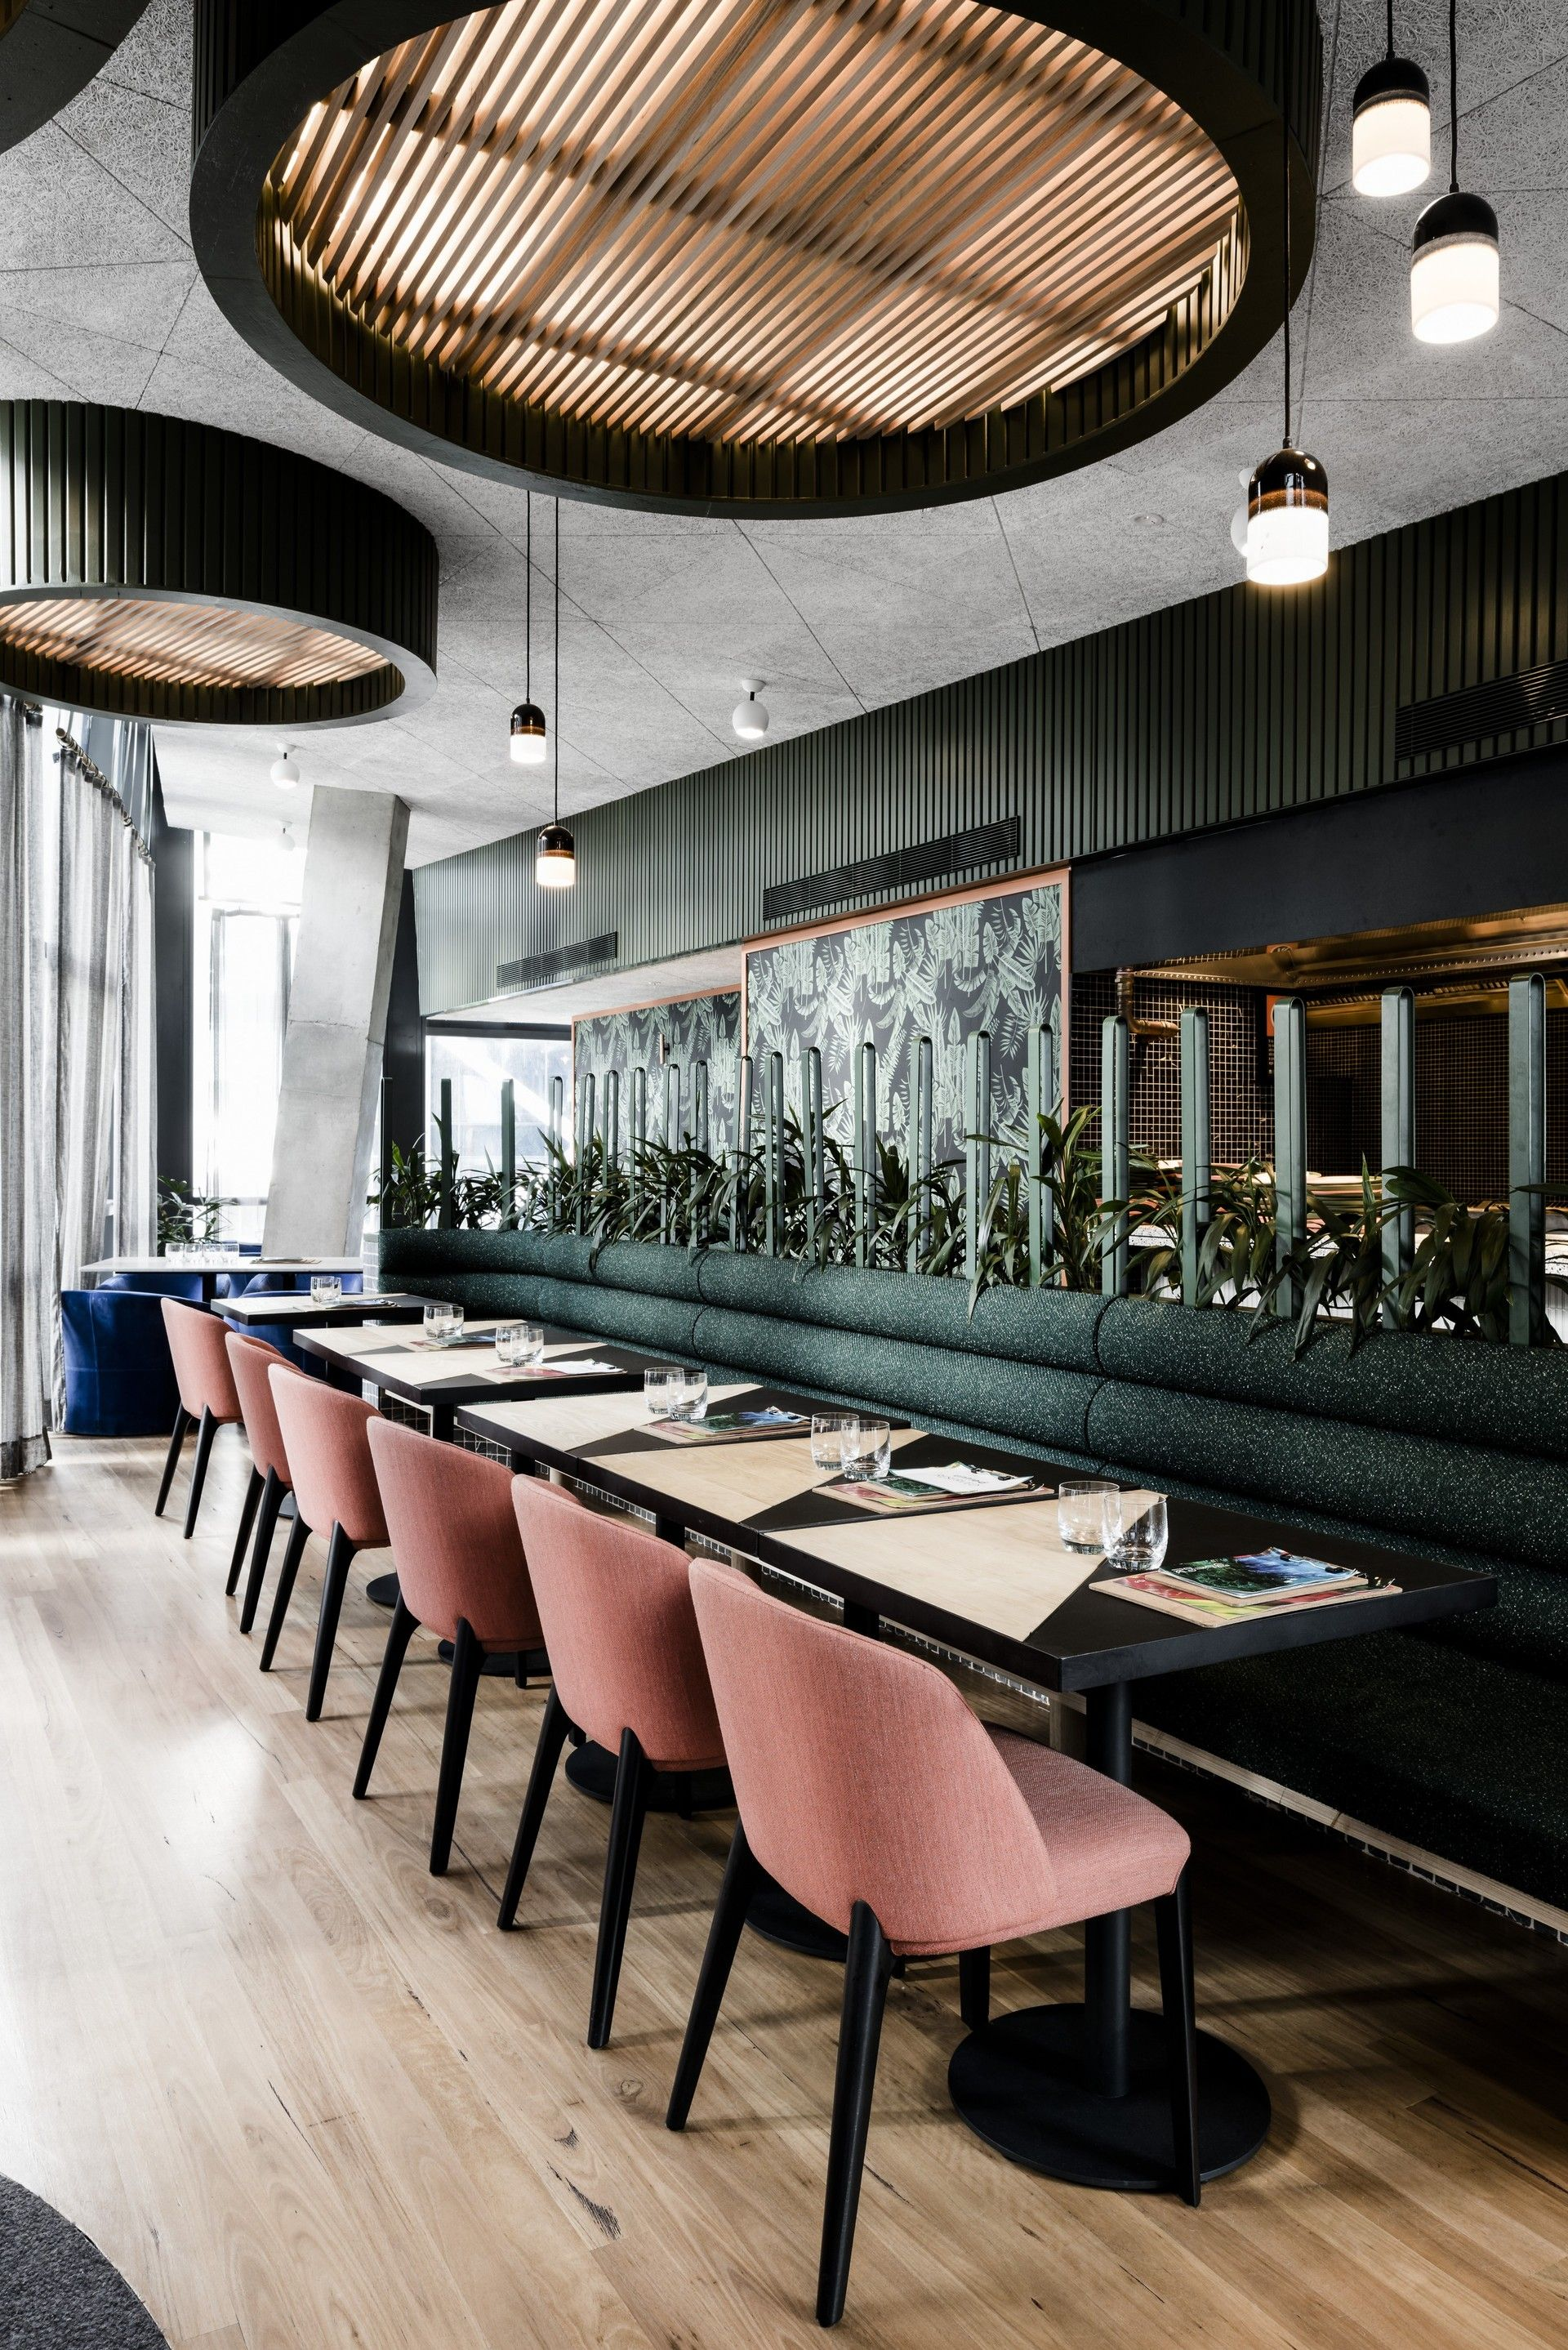 UNTIED By Techn Architecture Interior Design Restaurant Pink Velvet Chairs Dark Table Huge Flush Ceiling Lights And Wood Flooring